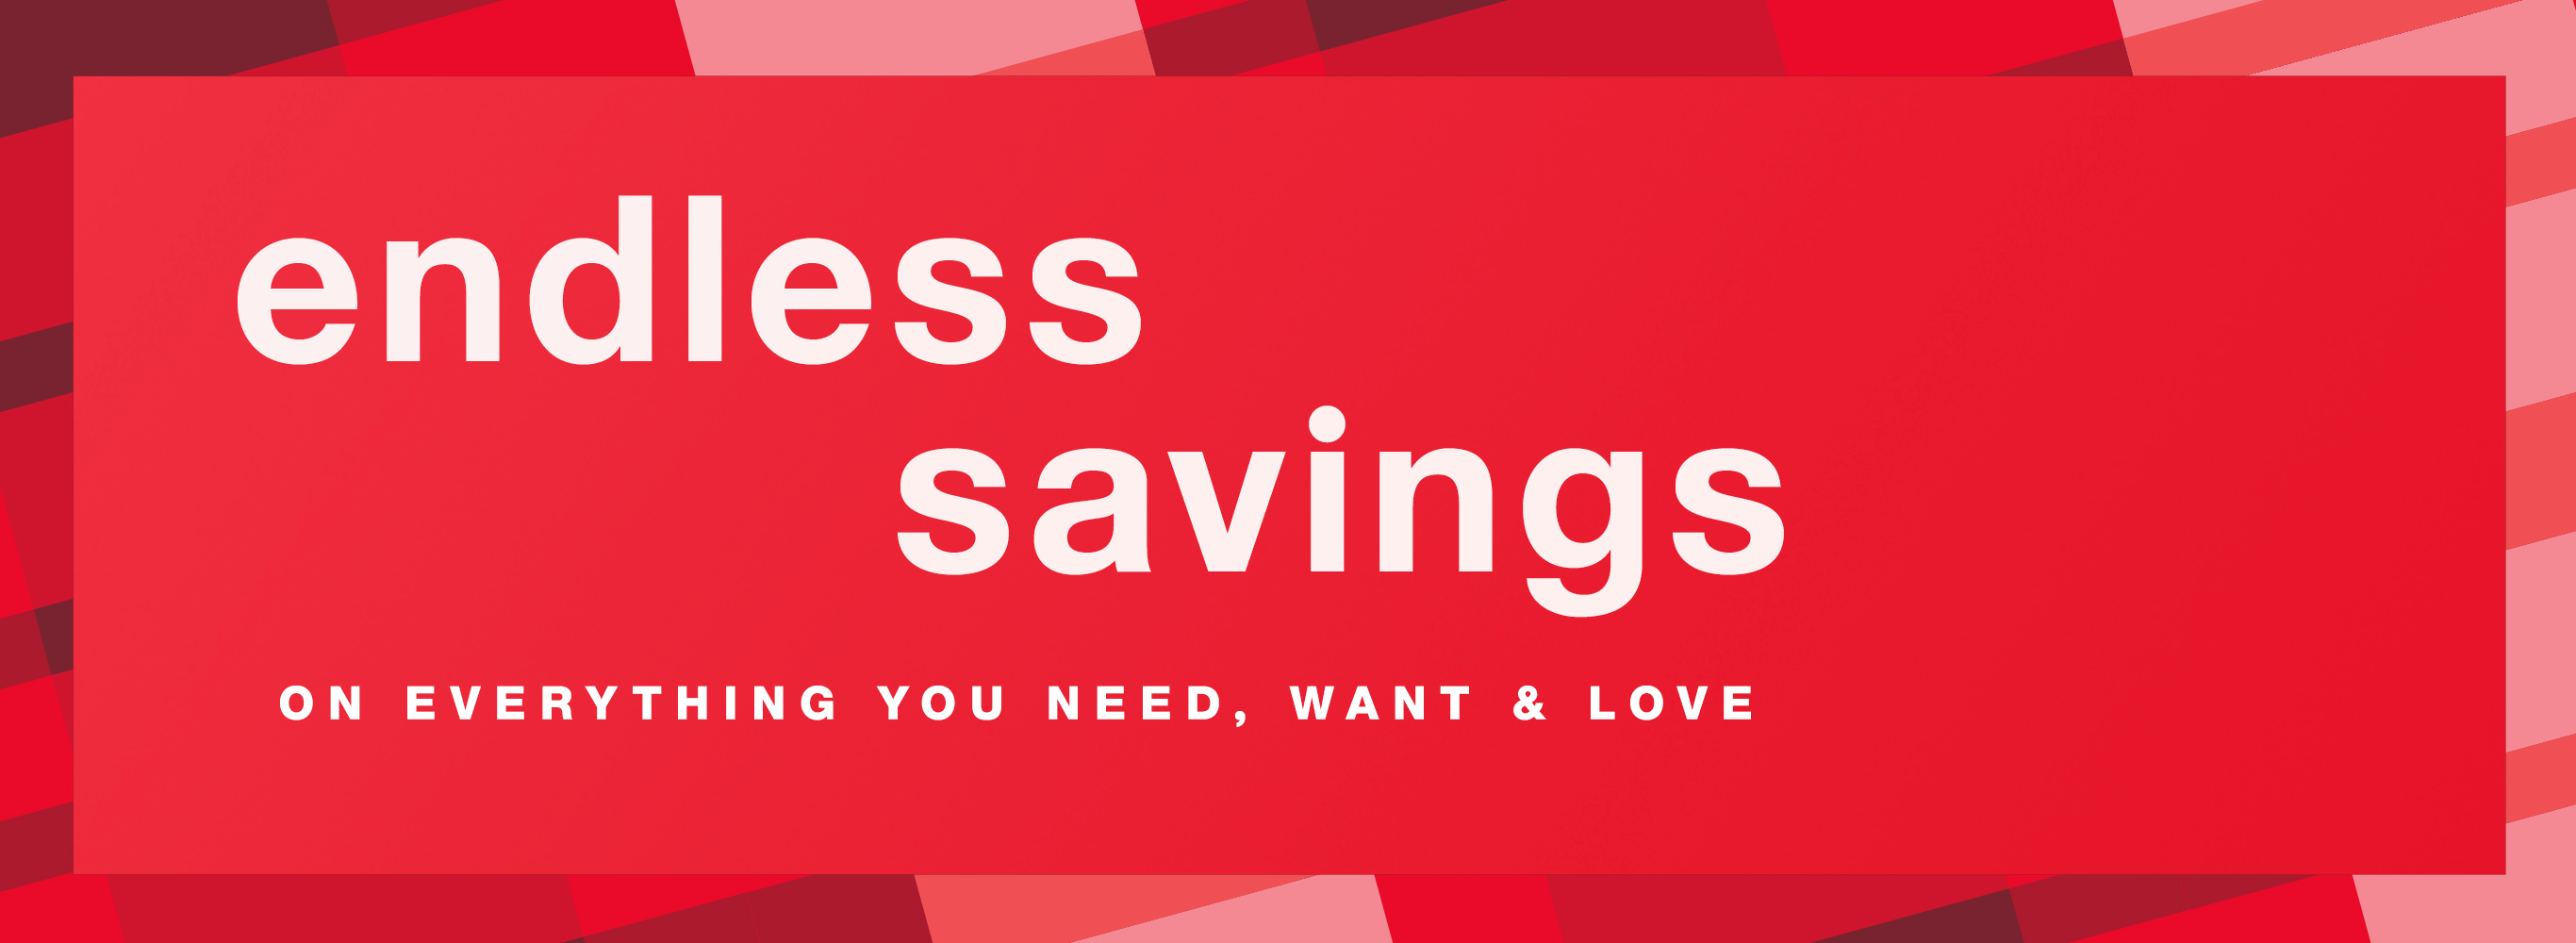 Endless Savings on Everything You Need, Want & Love